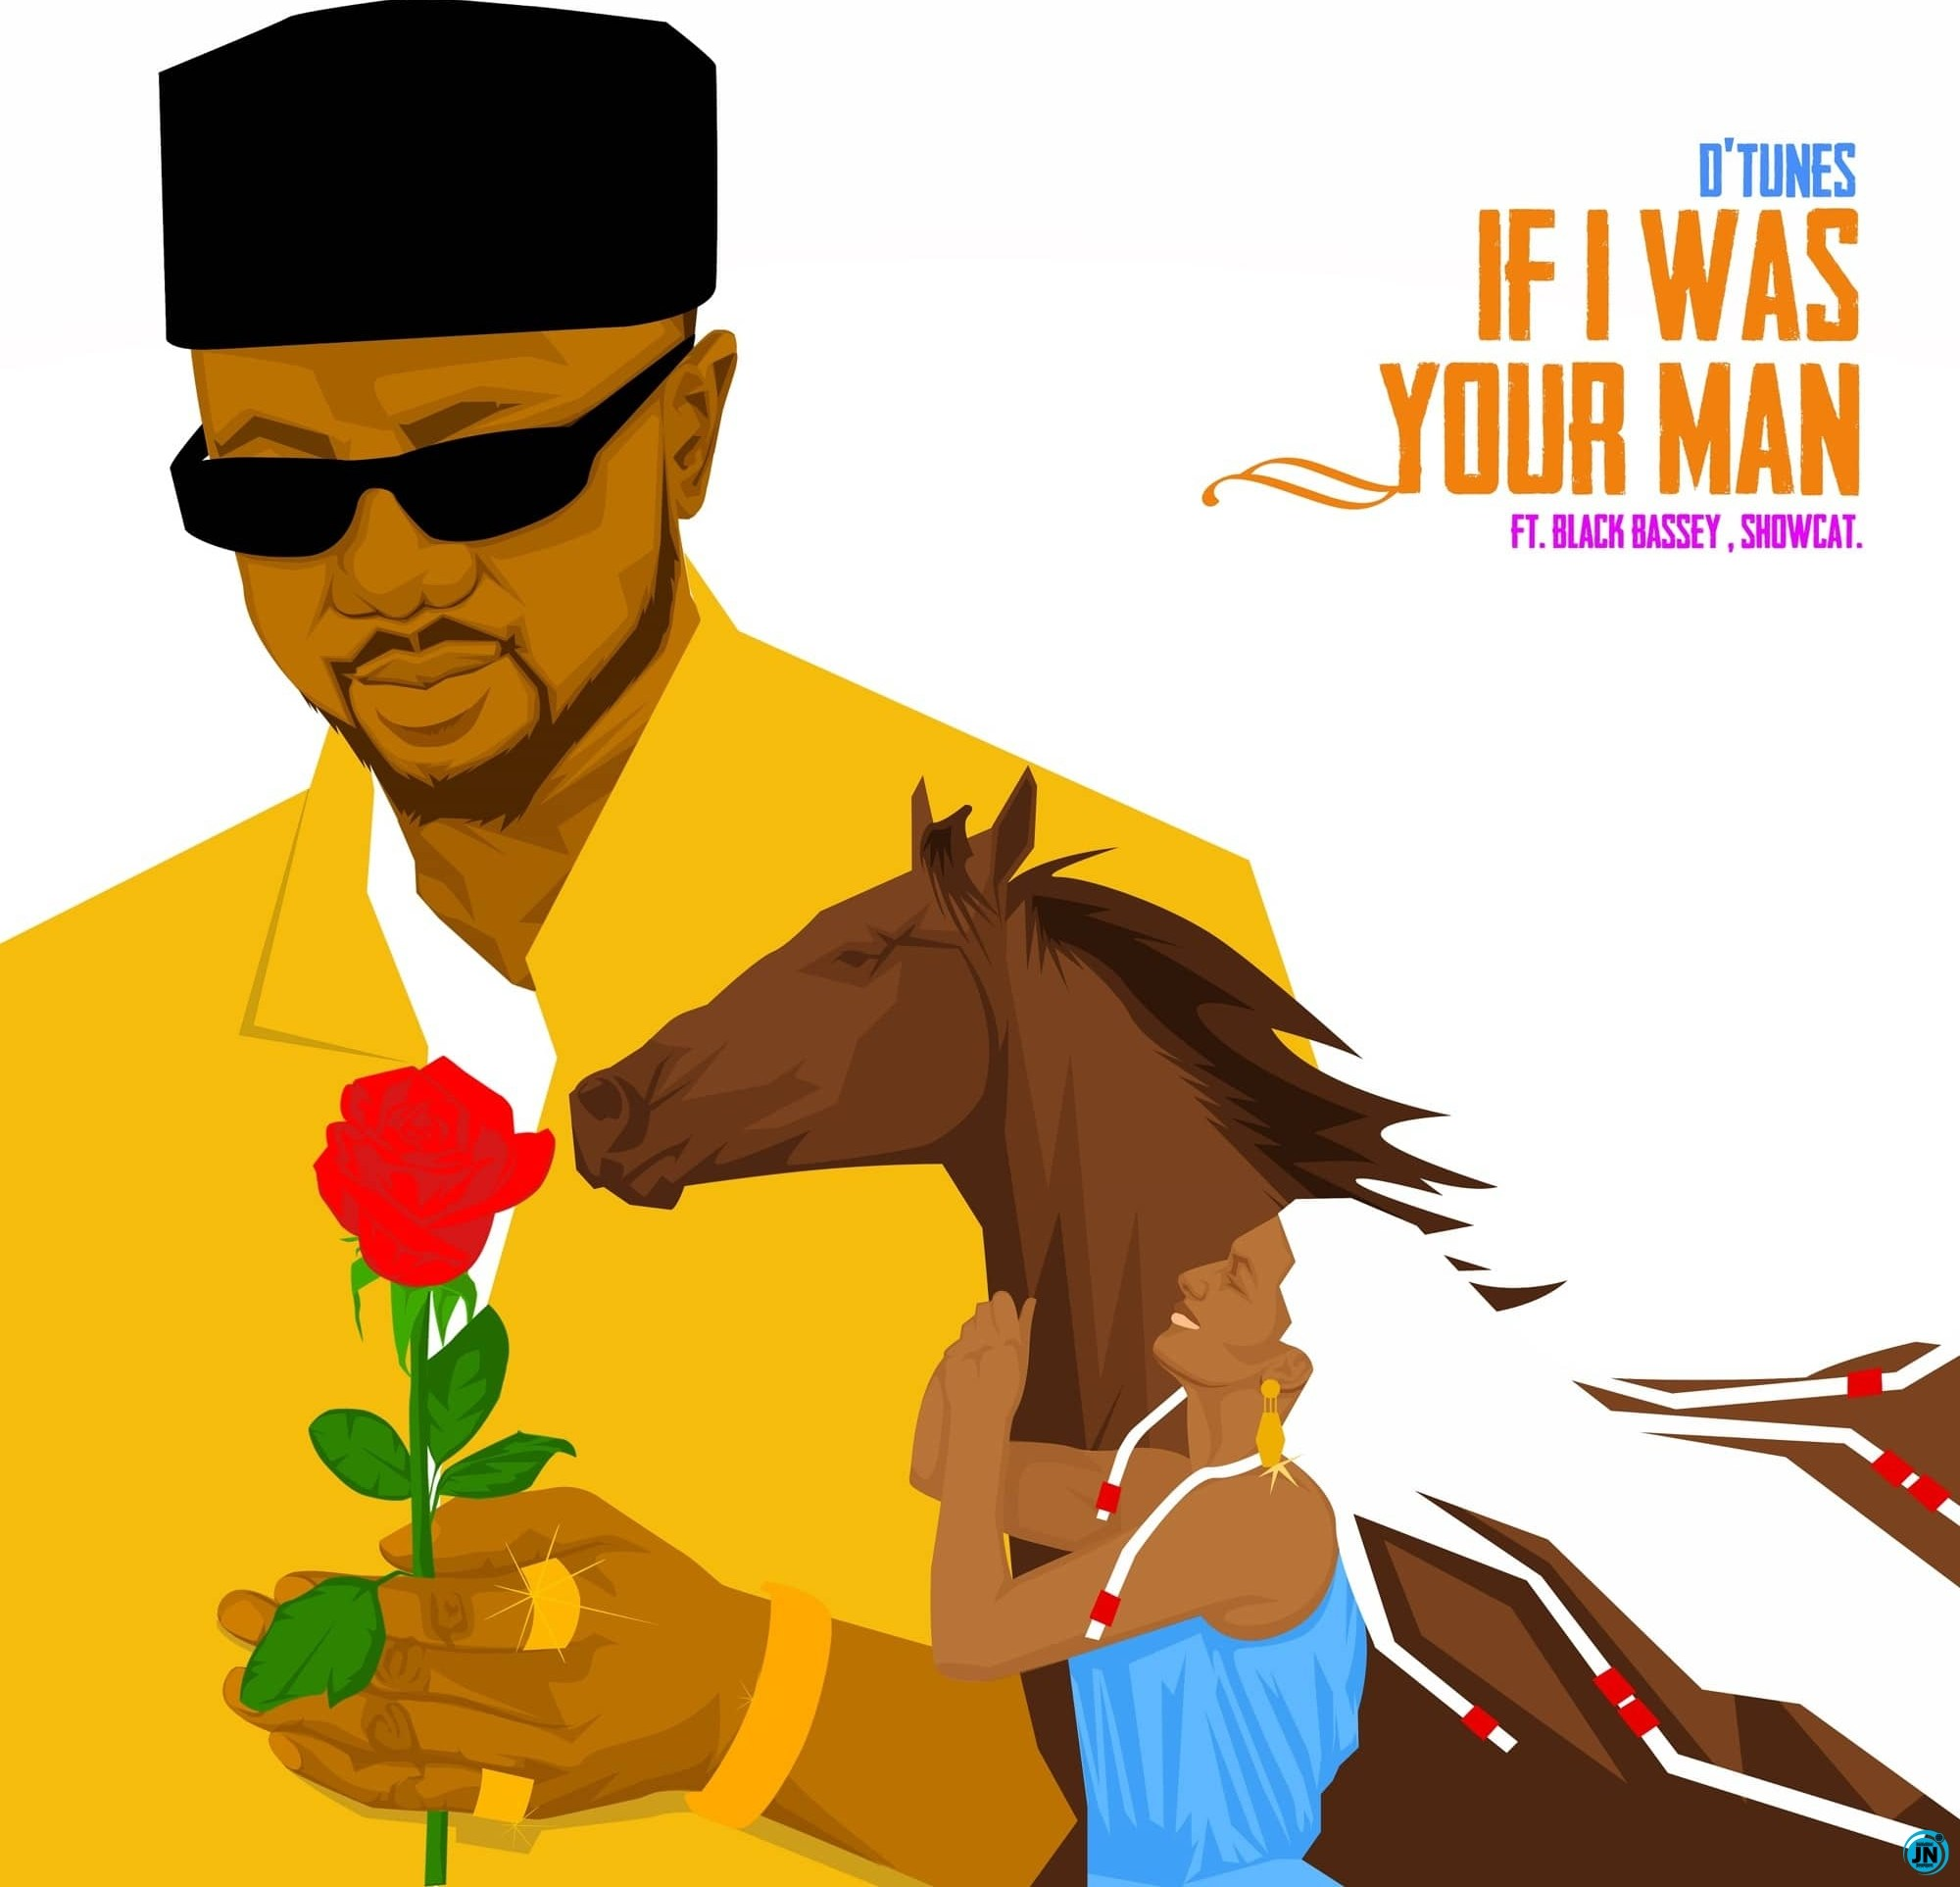 D'Tunes – If I Was Your Man ft Black Bassey, ShowCat